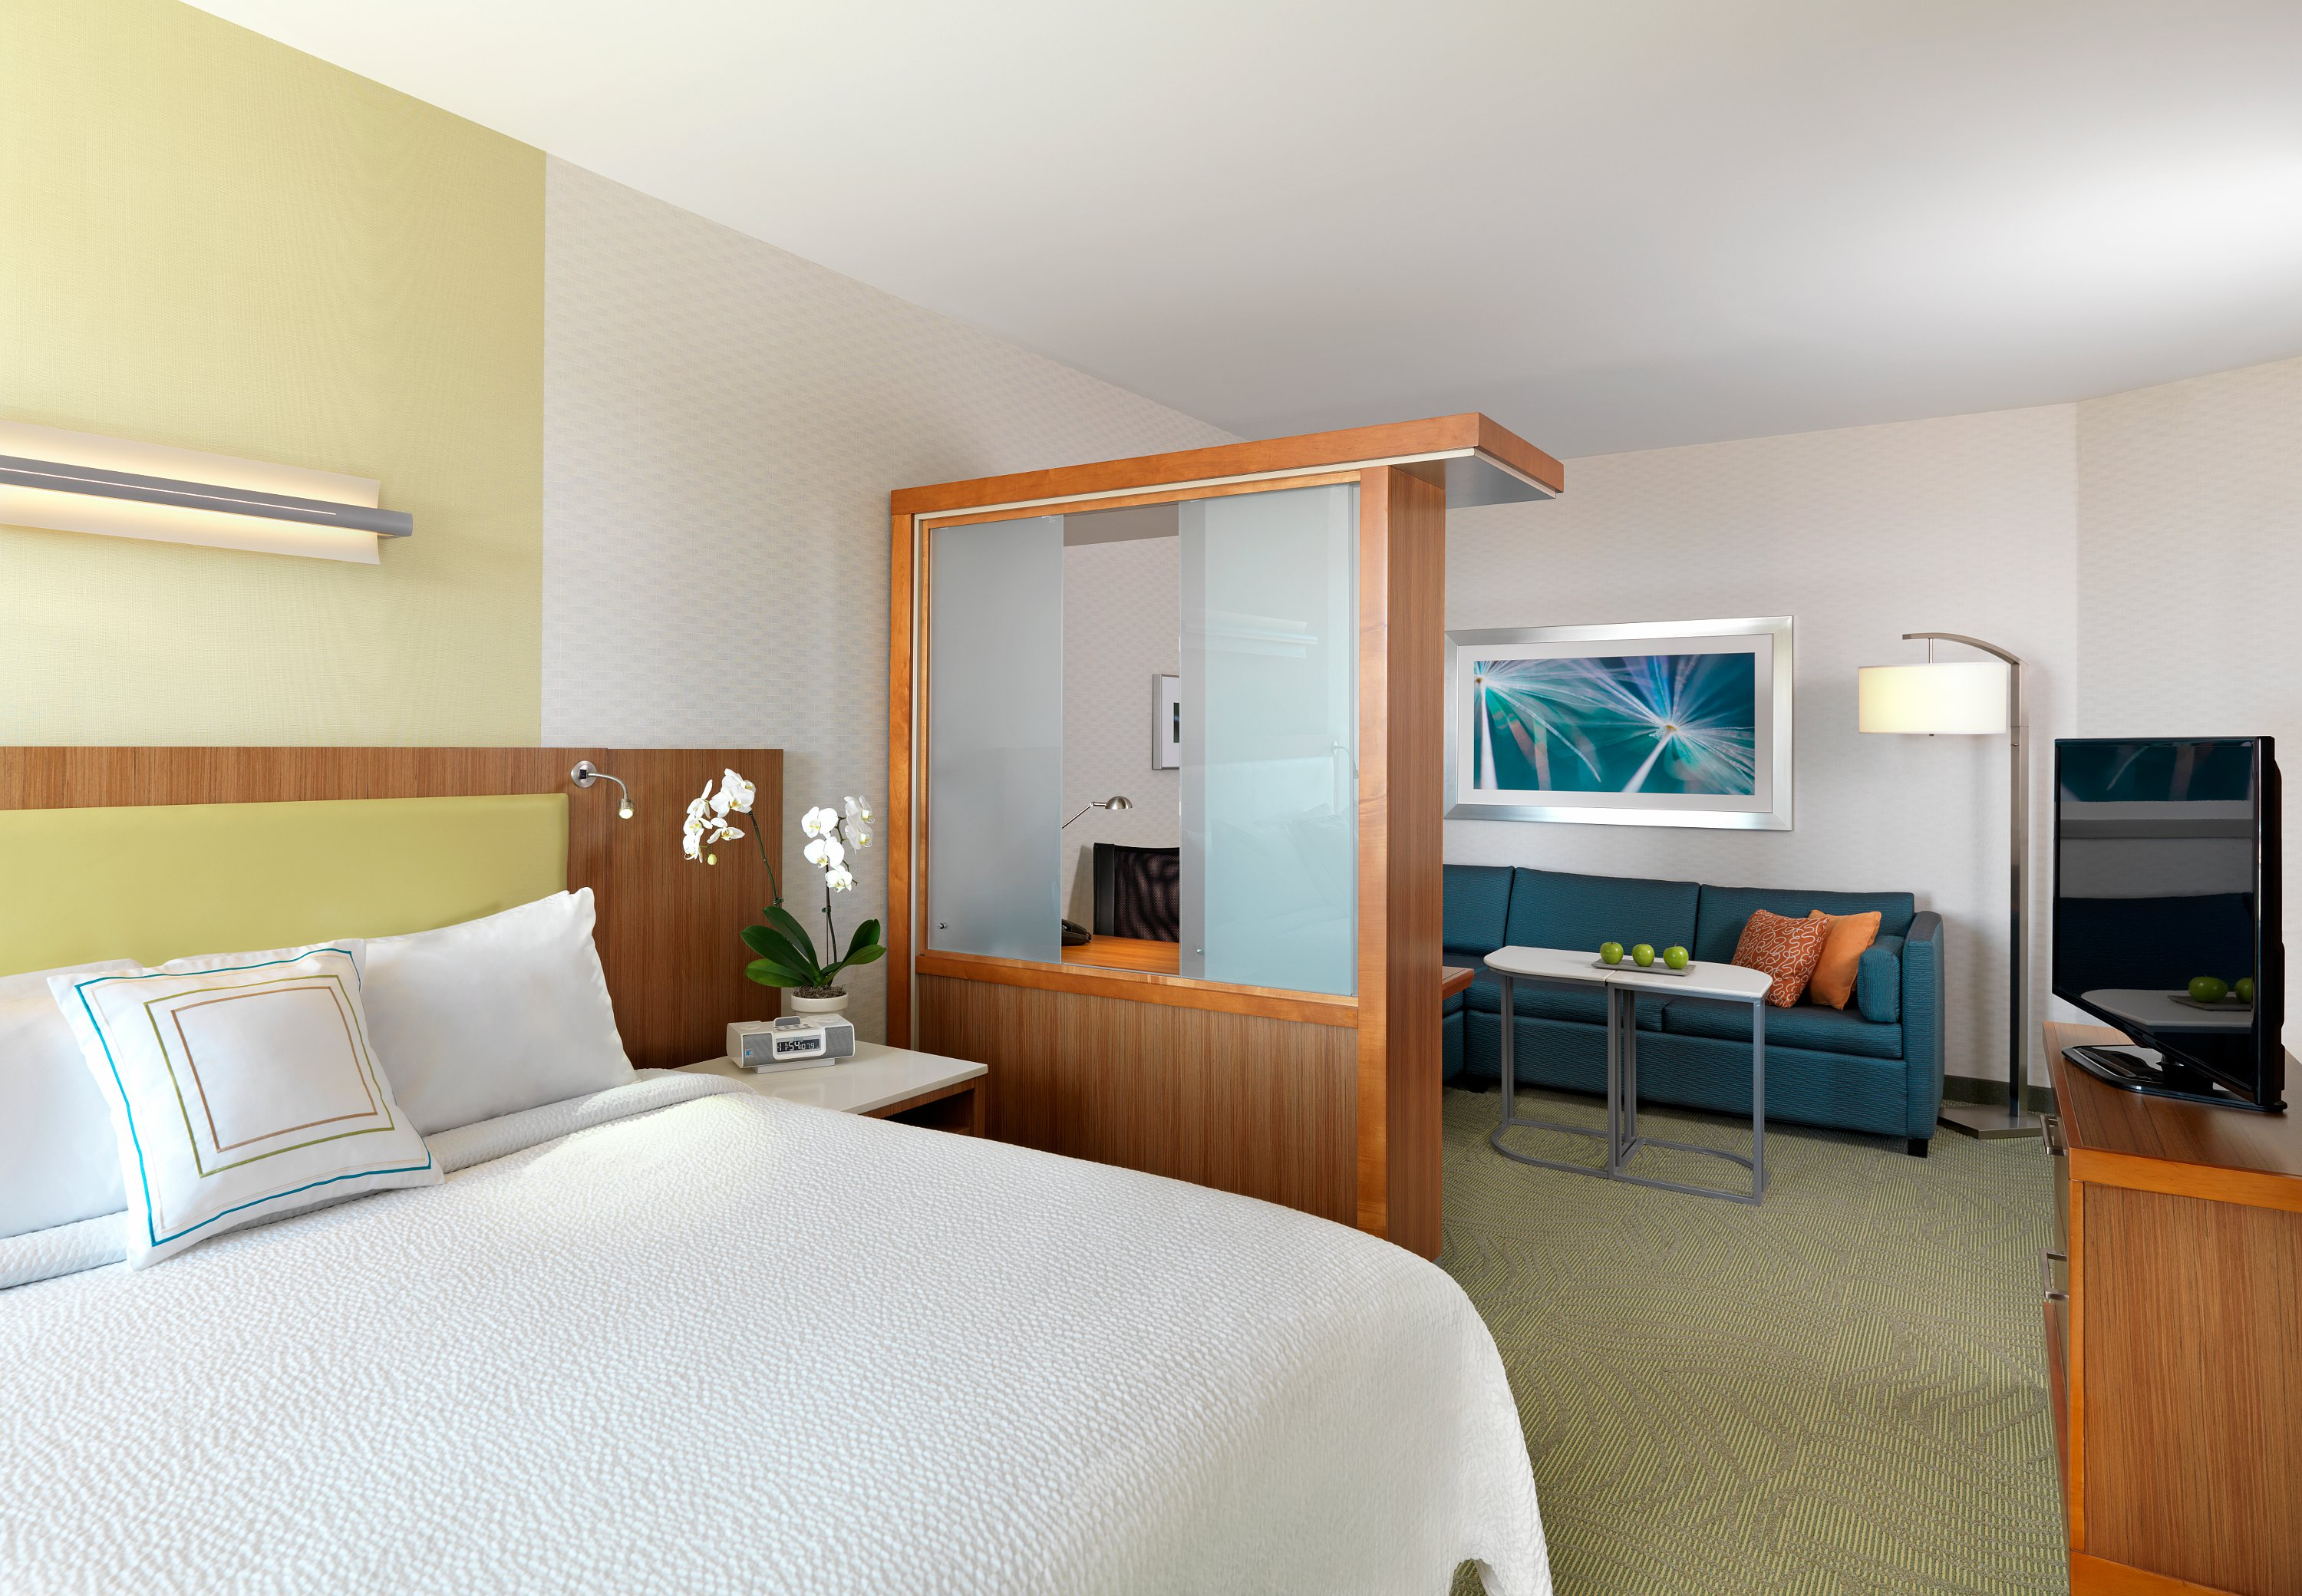 SpringHill Suites by Marriott Denver Tech Center image 4